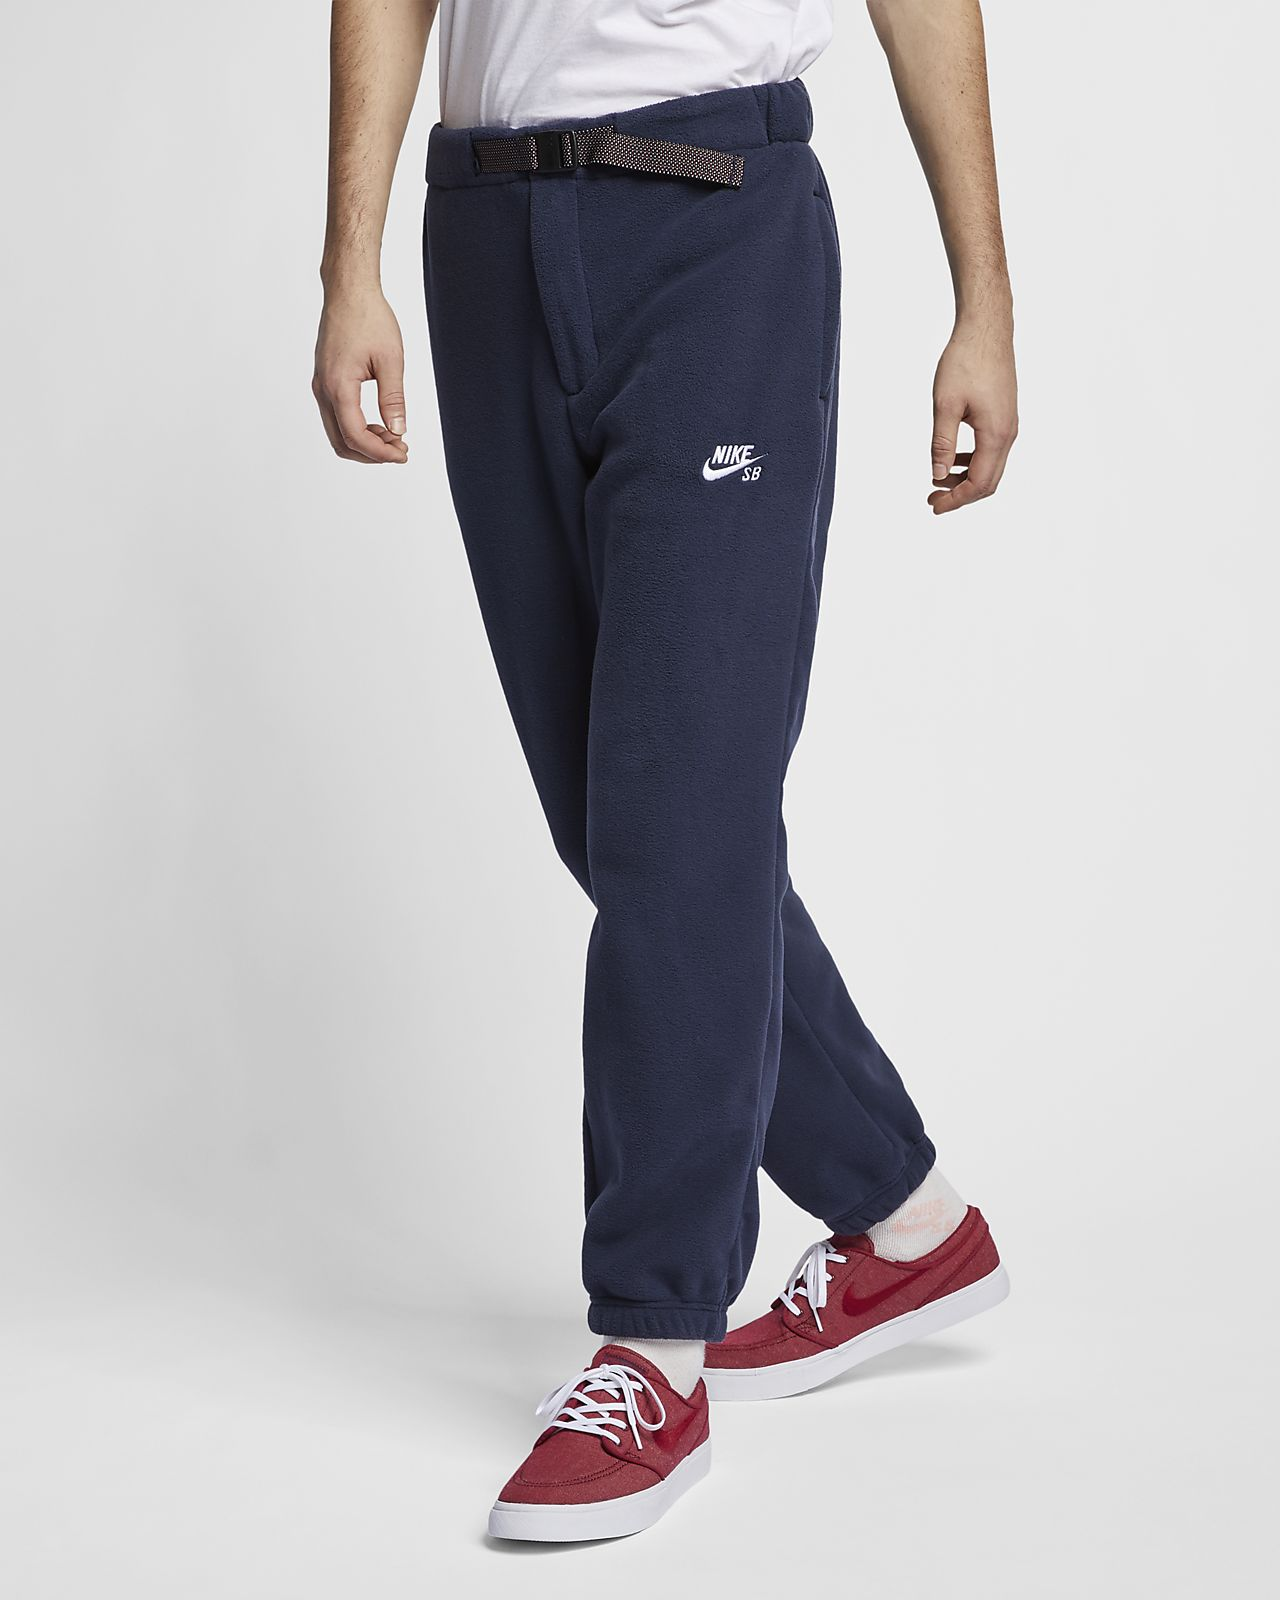 f729a47409e75 Nike SB Men's Skateboarding Trousers. Nike.com NZ